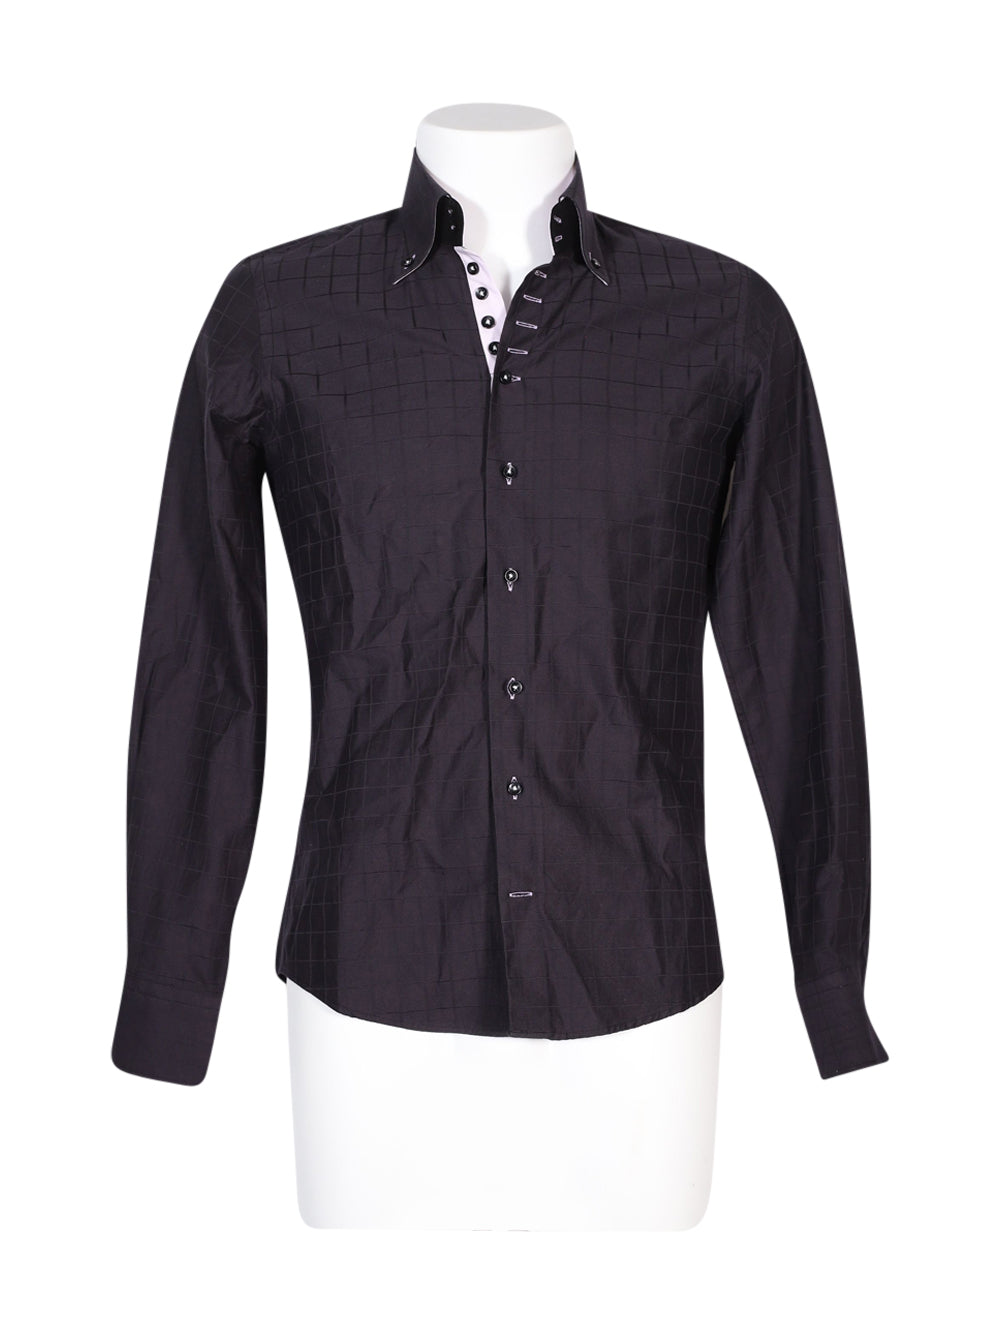 Front photo of Preloved 7 Camicie Black Man's shirt - size 36/S